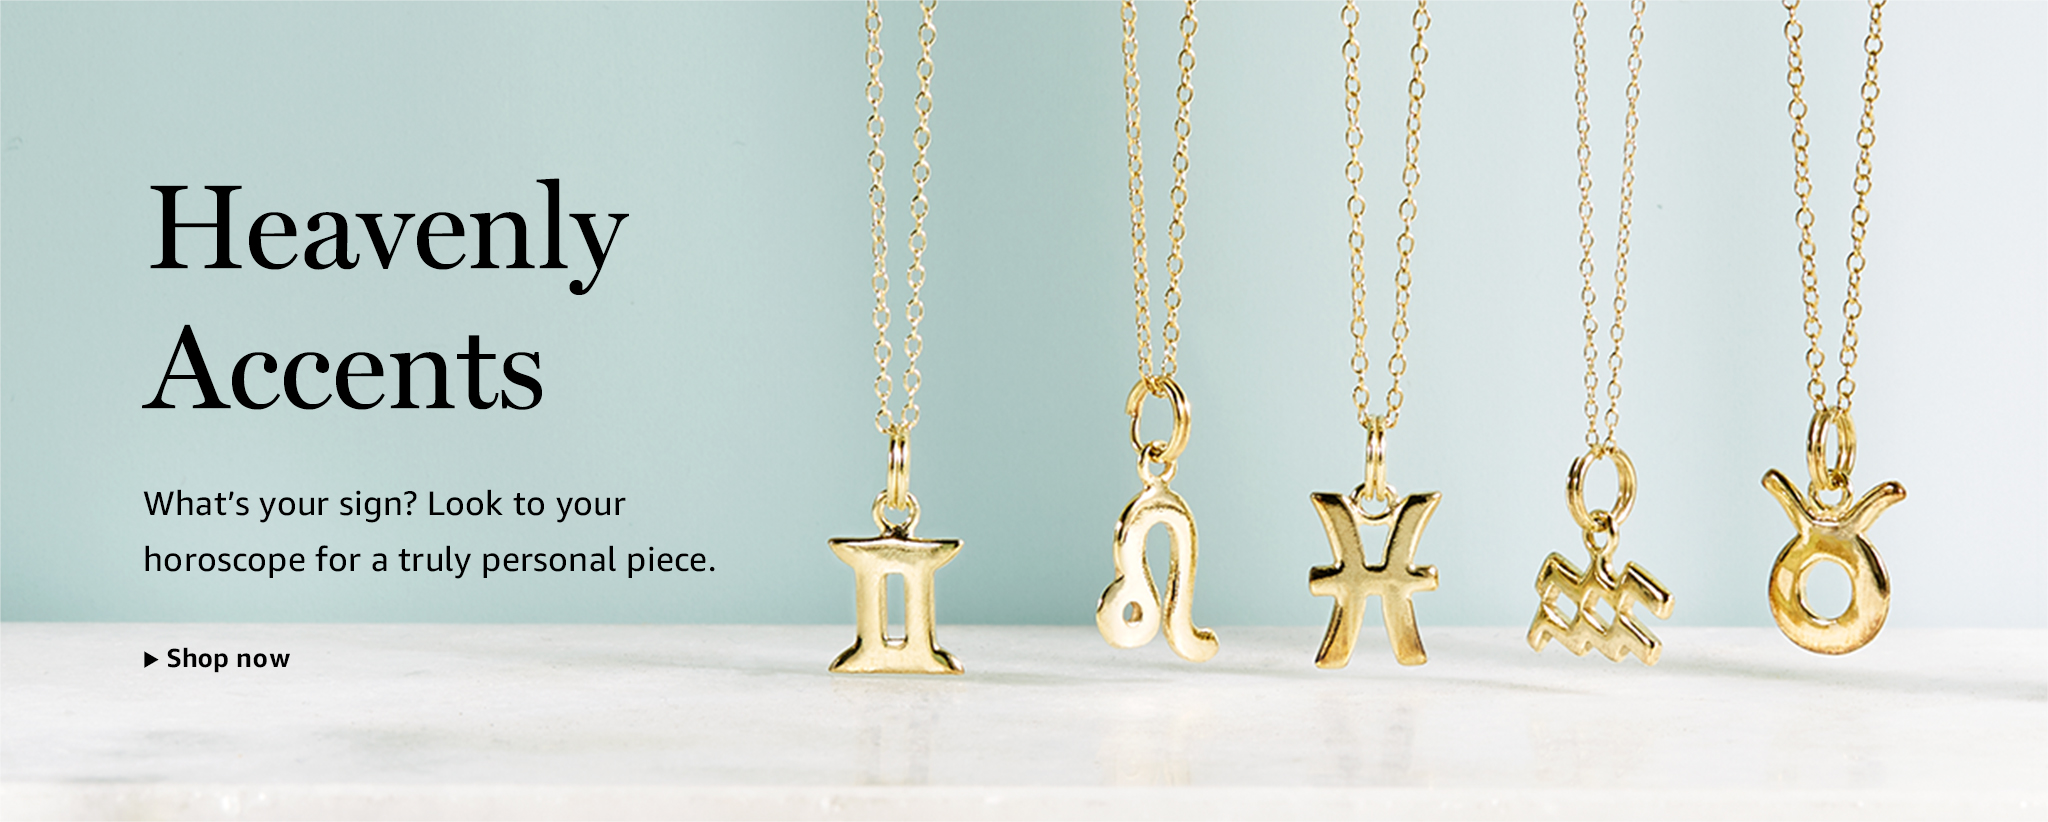 Women's Jewelry - Heavenly Accents: Look to your horoscope for a truly personal piece.